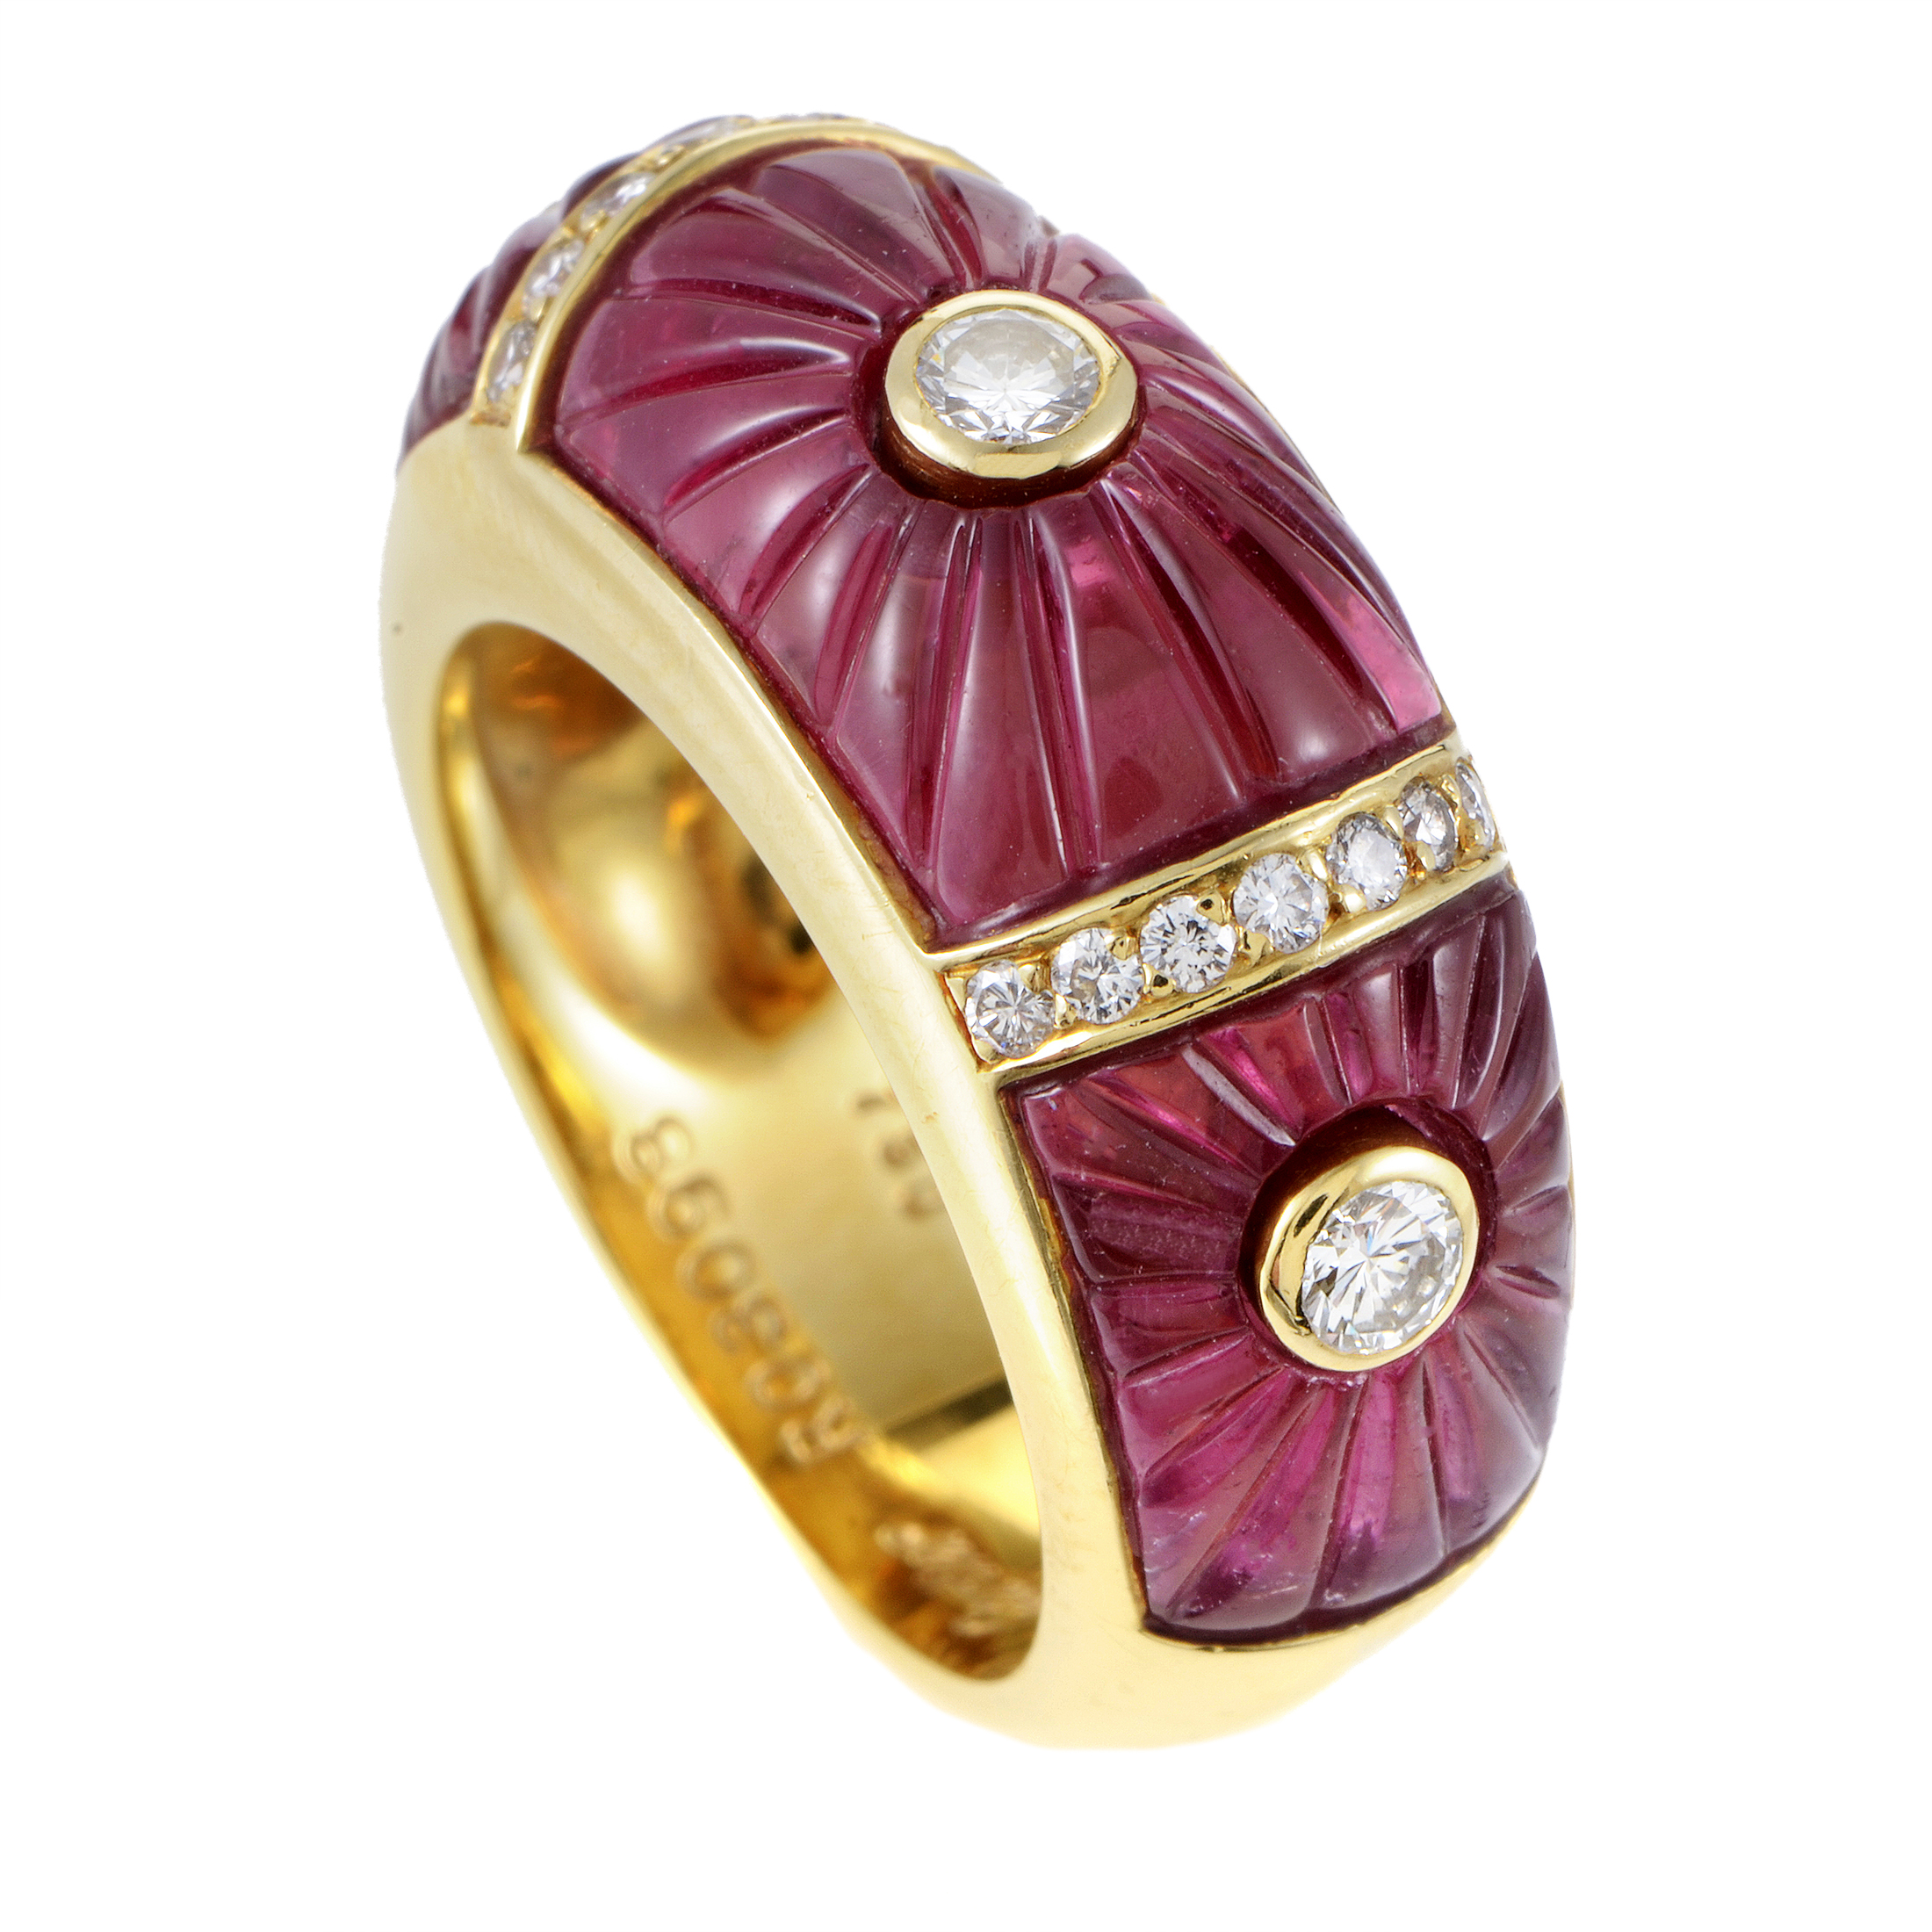 Cartier Women's 18K Yellow Gold Diamond & Pink Tourmaline Band Ring